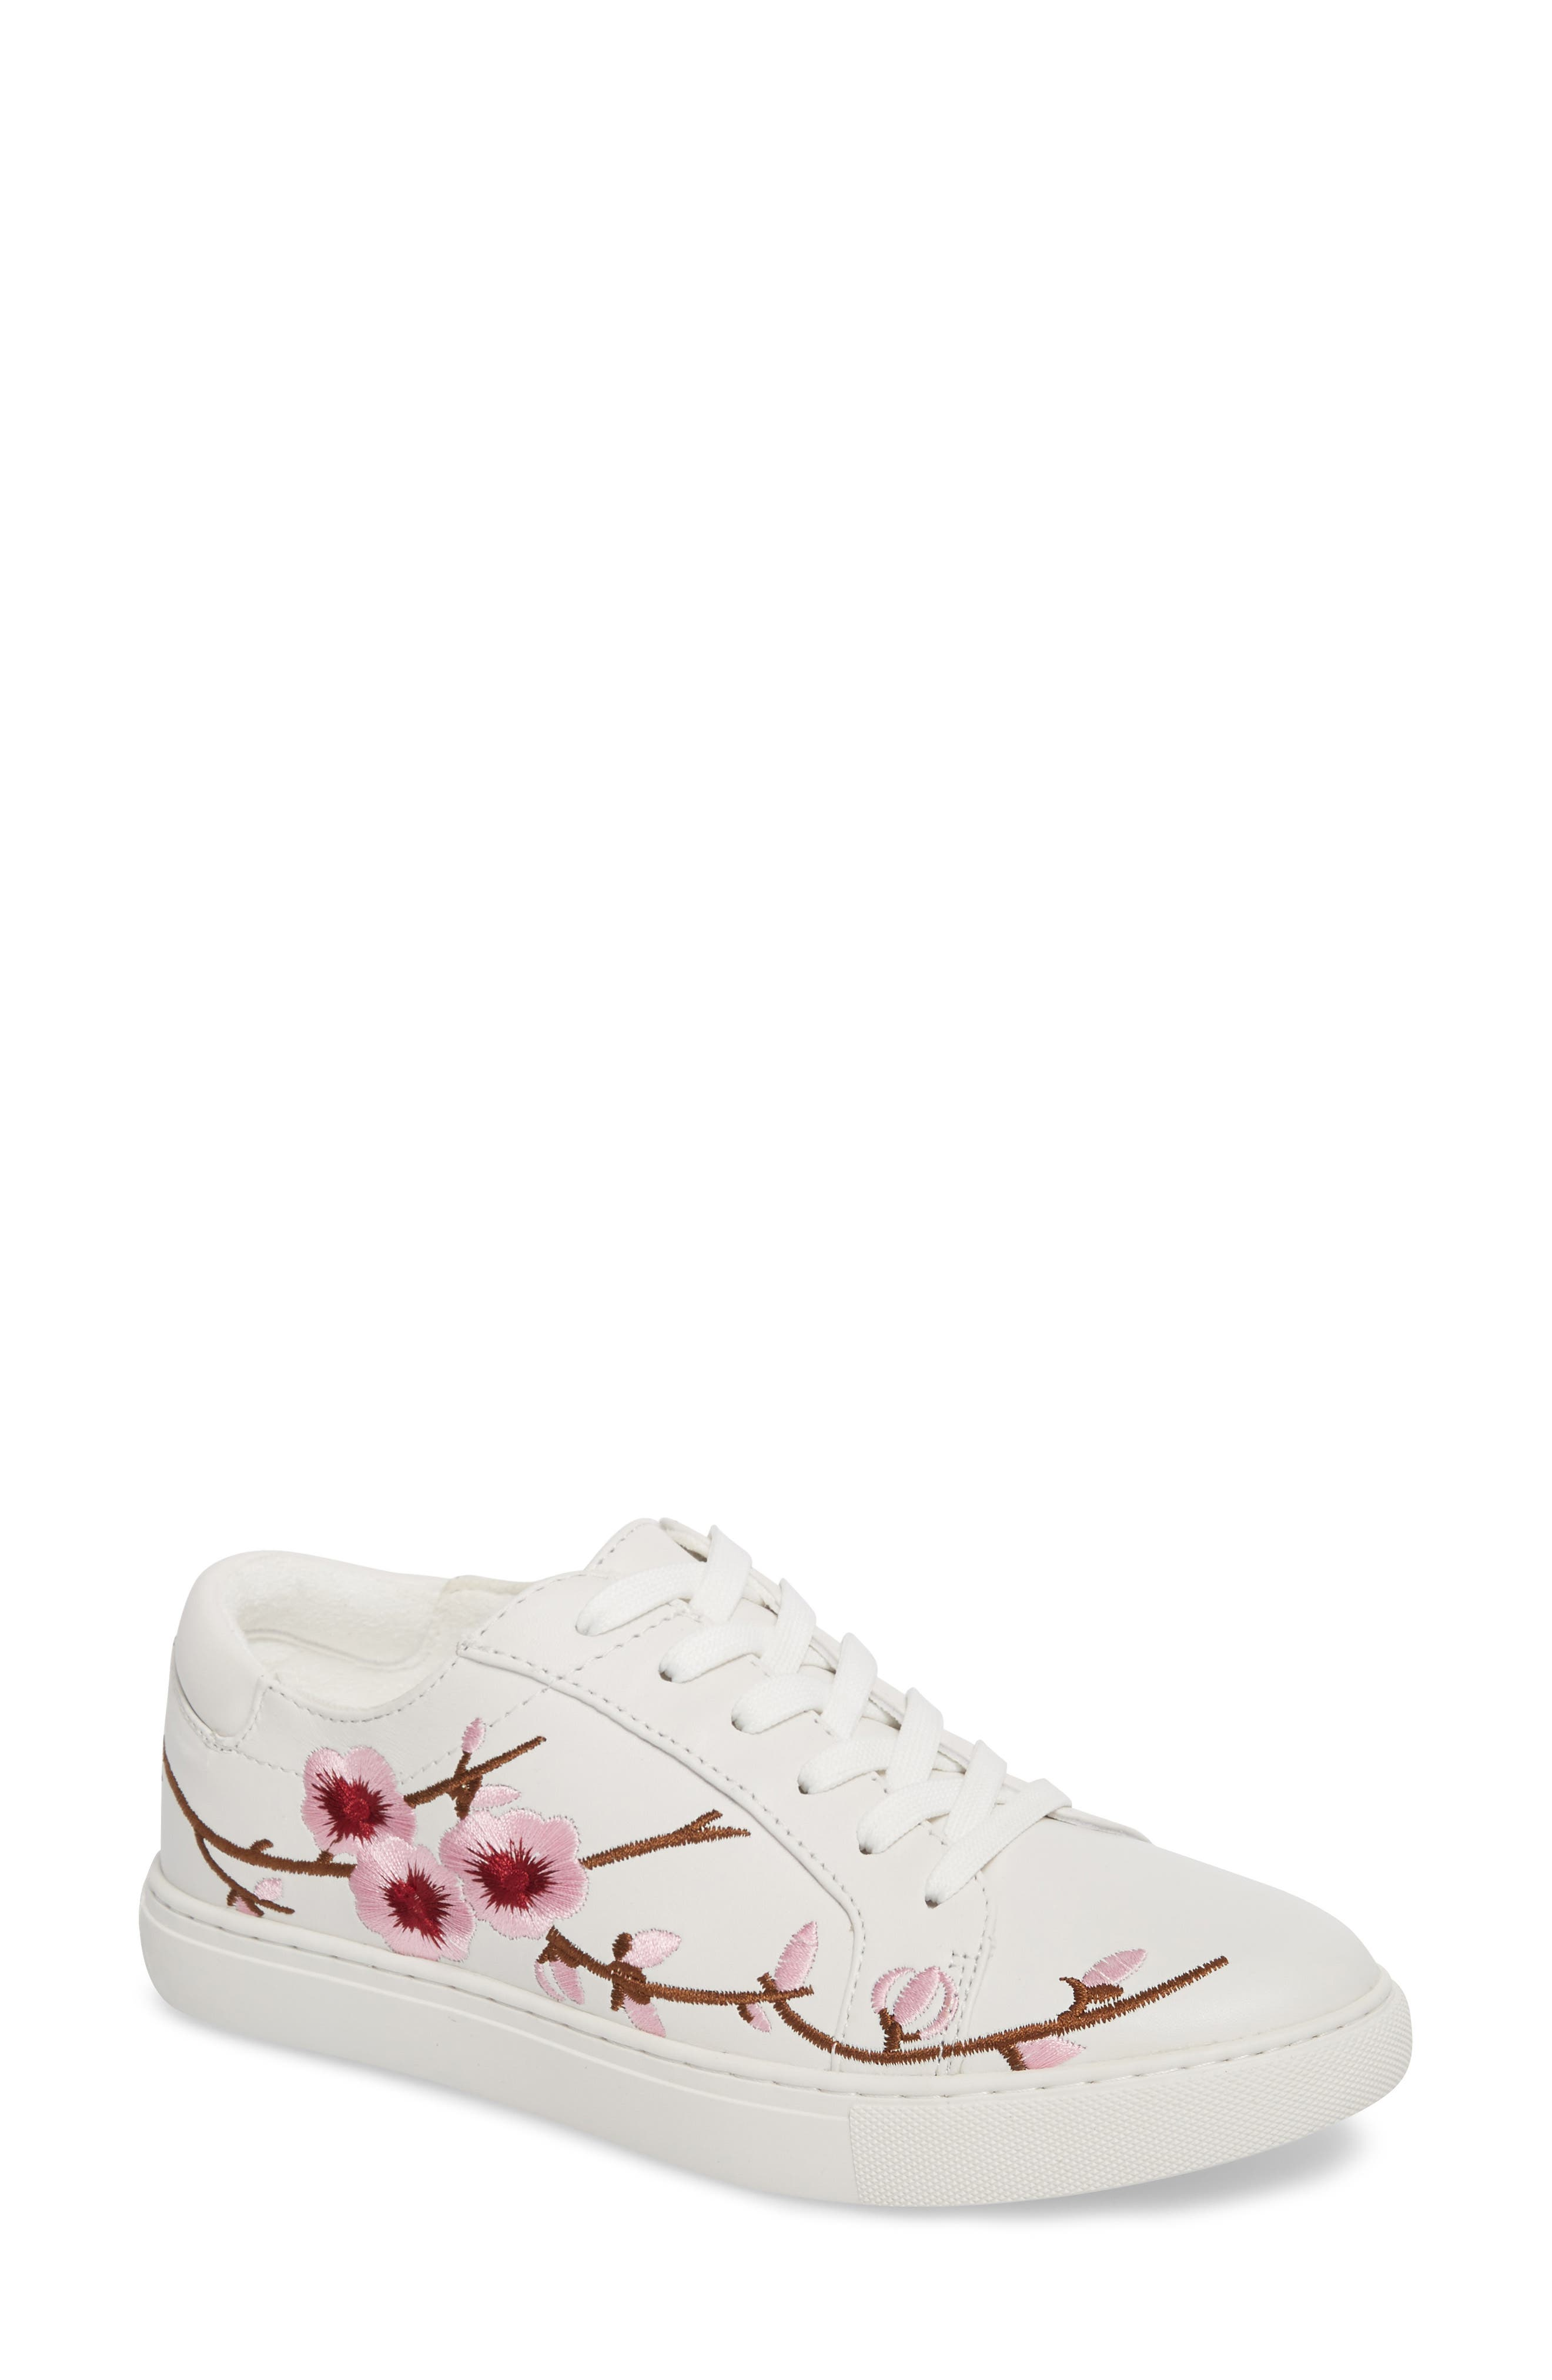 Kam Blossom Embroidered Sneaker,                             Main thumbnail 1, color,                             110